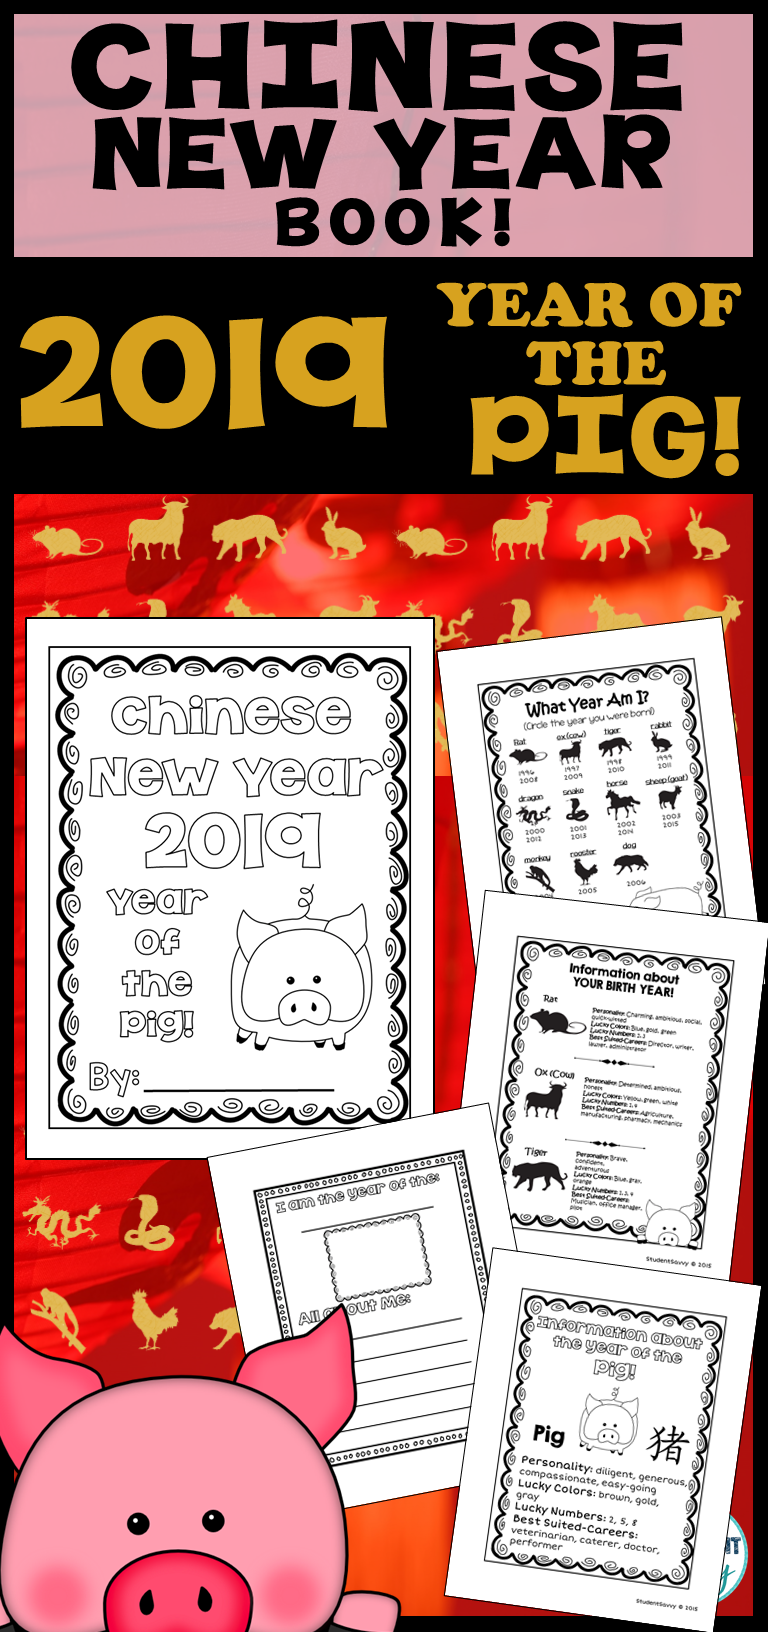 Chinese new year 2019 activities year of the pig book - What is the lucky color of the year 2019 ...